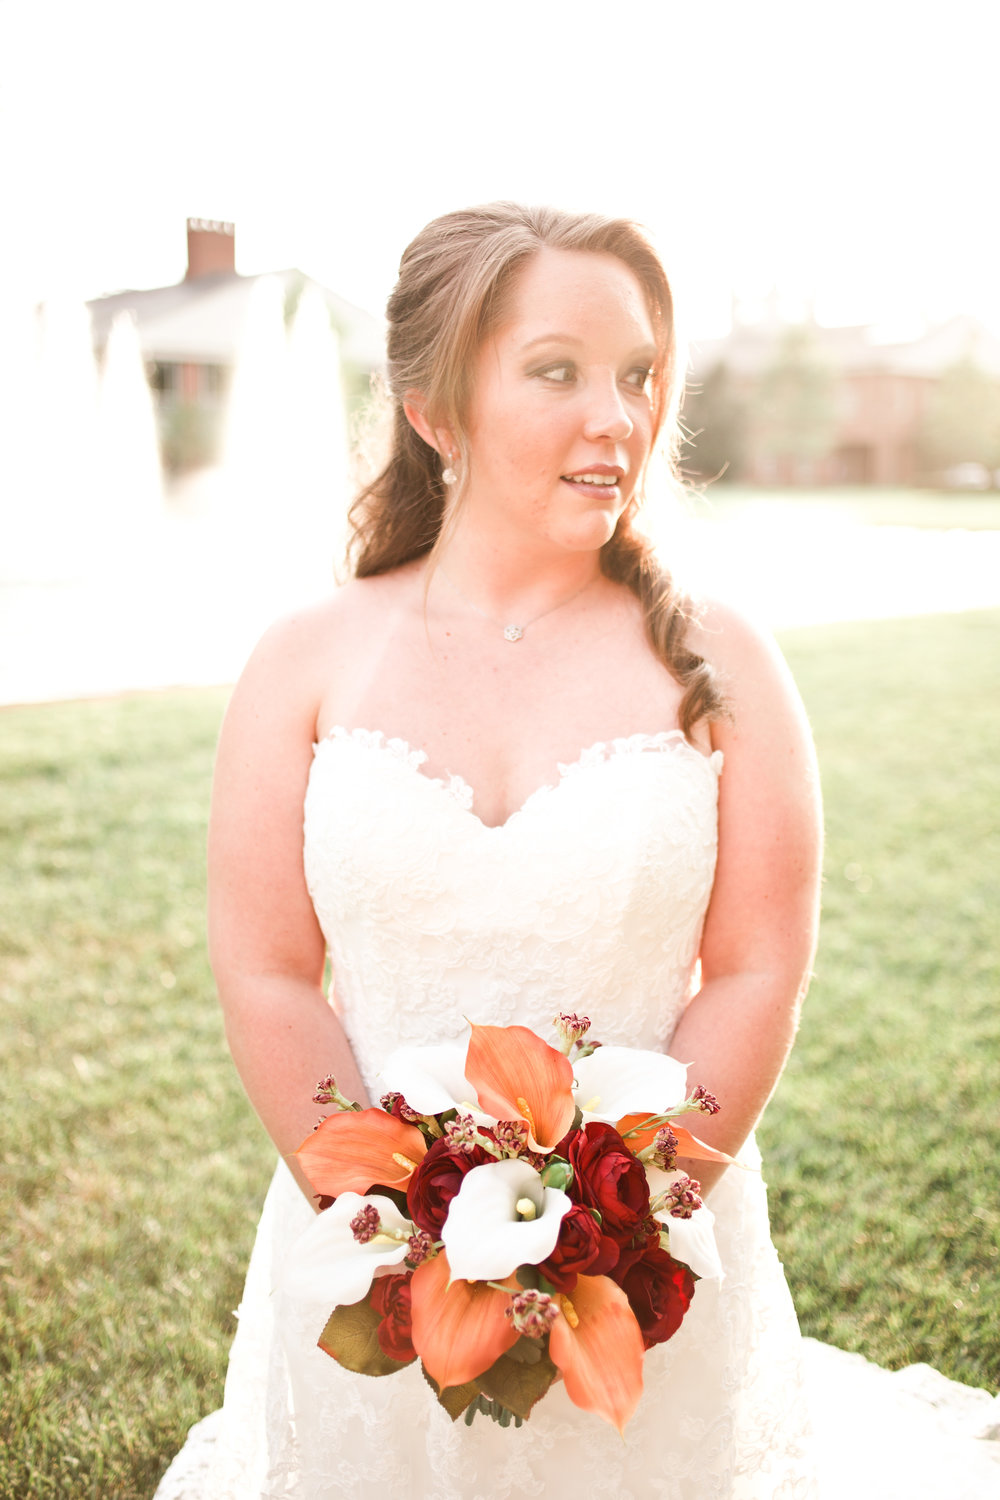 gabbie_bridal_poured_out_photography-64.jpg